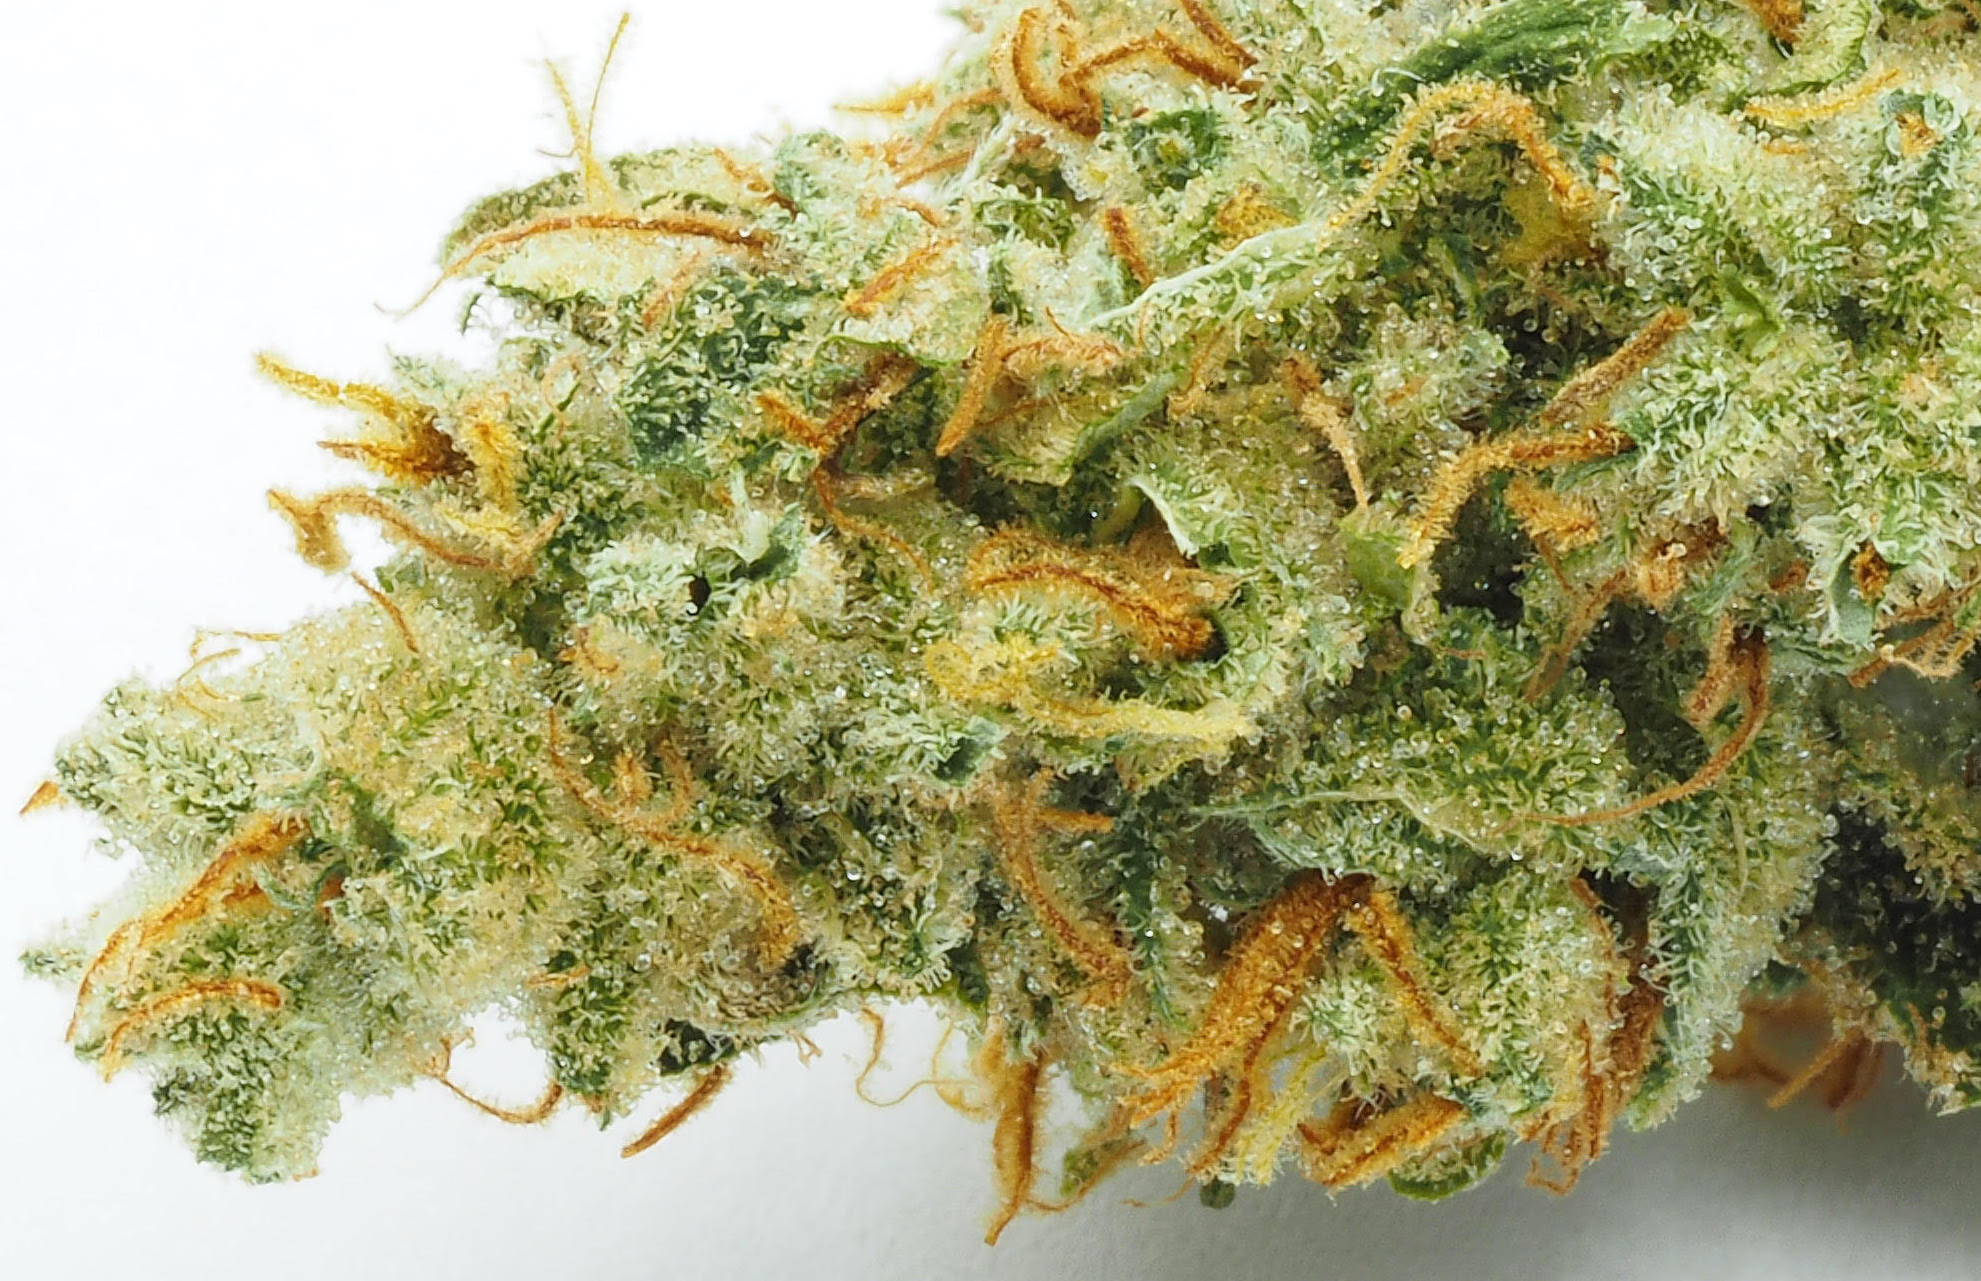 CRAFT Super Lemon Haze comes straight from the source in Amsterdam. (Courtesy CRAFT/SC Labs)